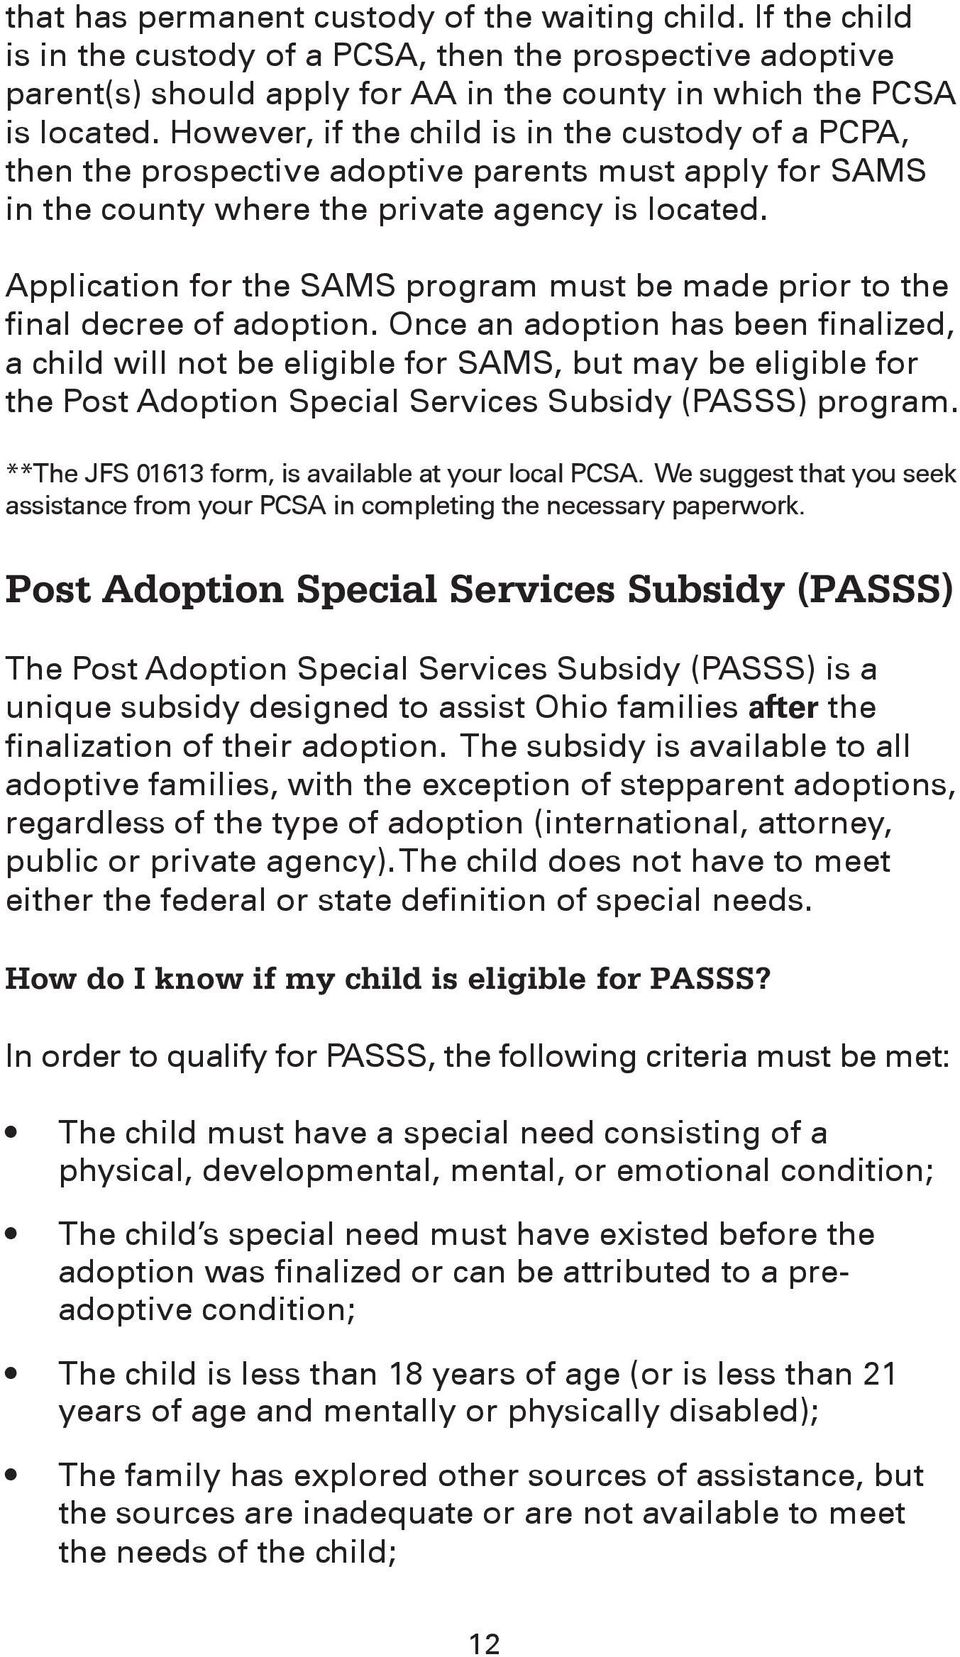 Application for the SAMS program must be made prior to the final decree of adoption.